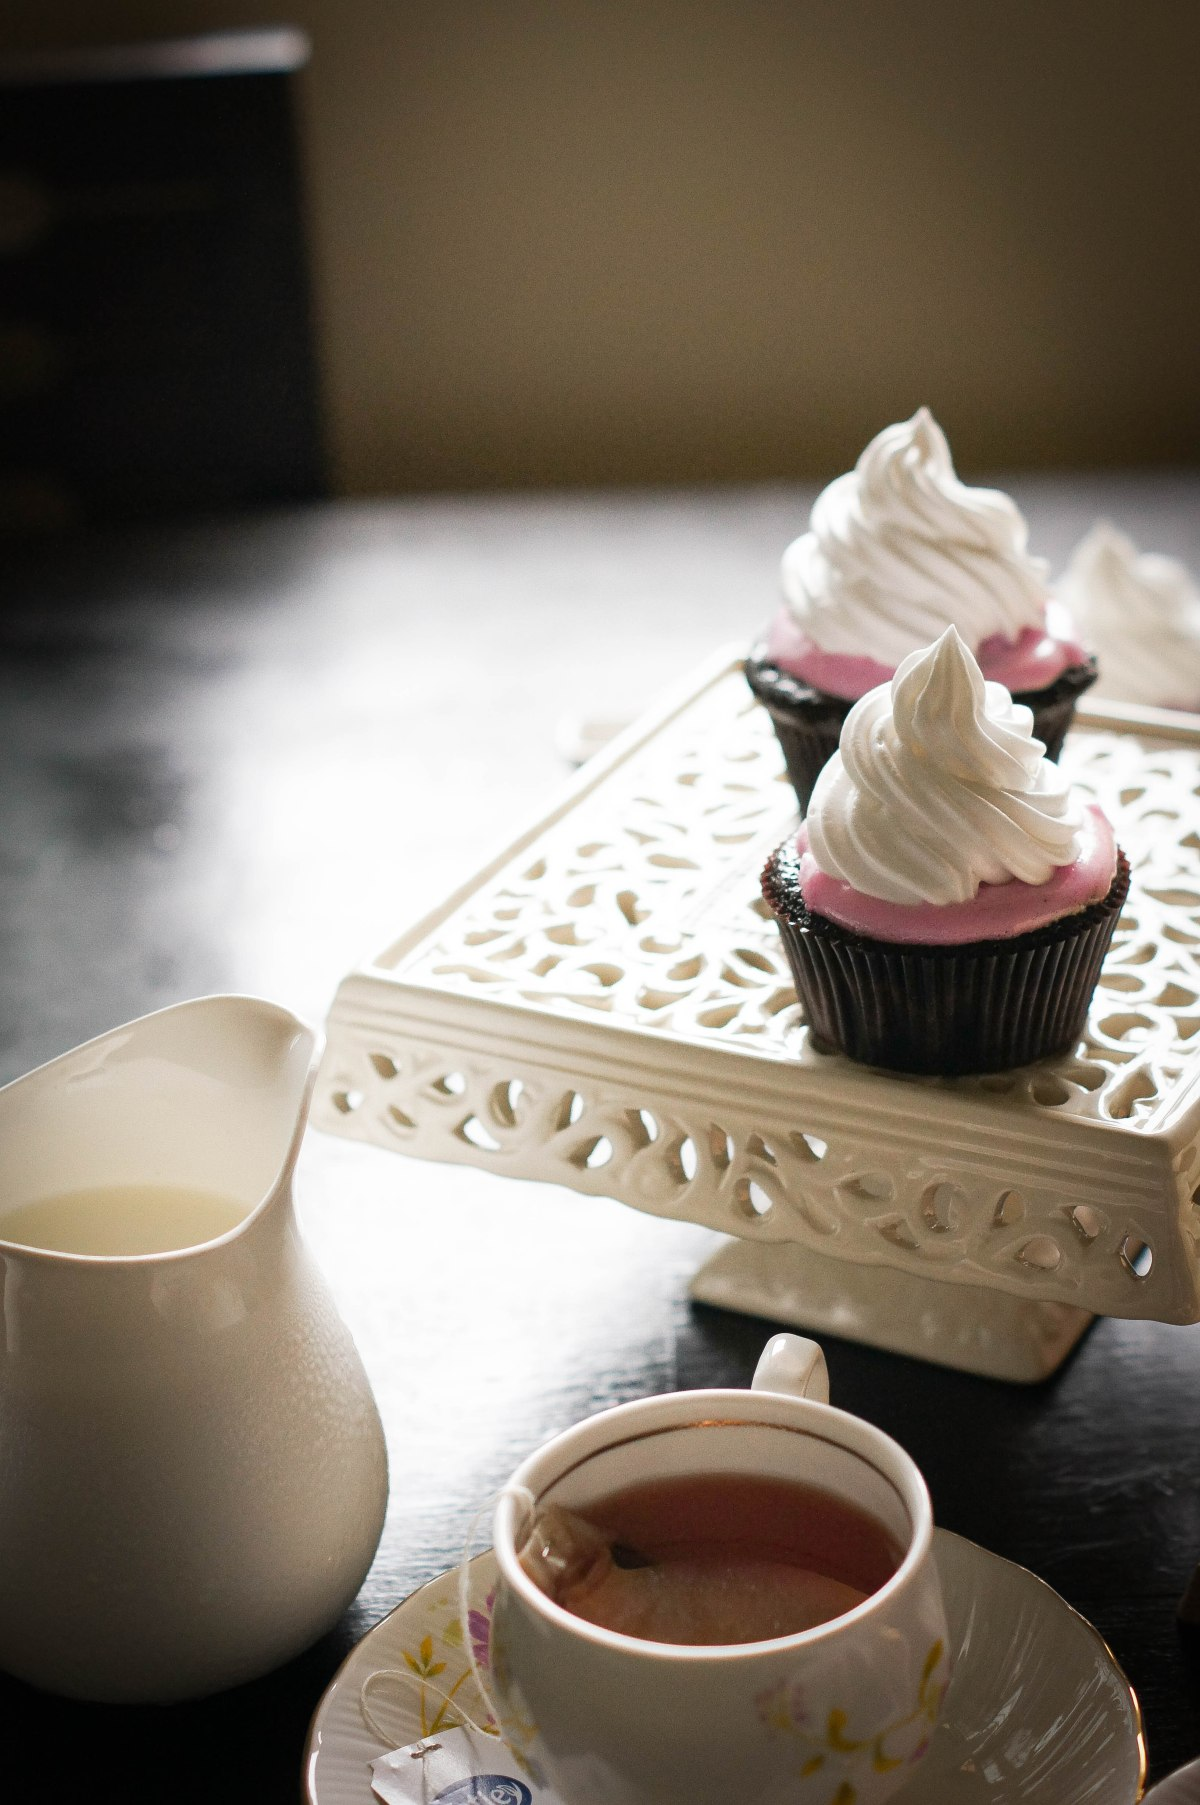 Melted Marshmallow Frosting on ChocolateCupcakes